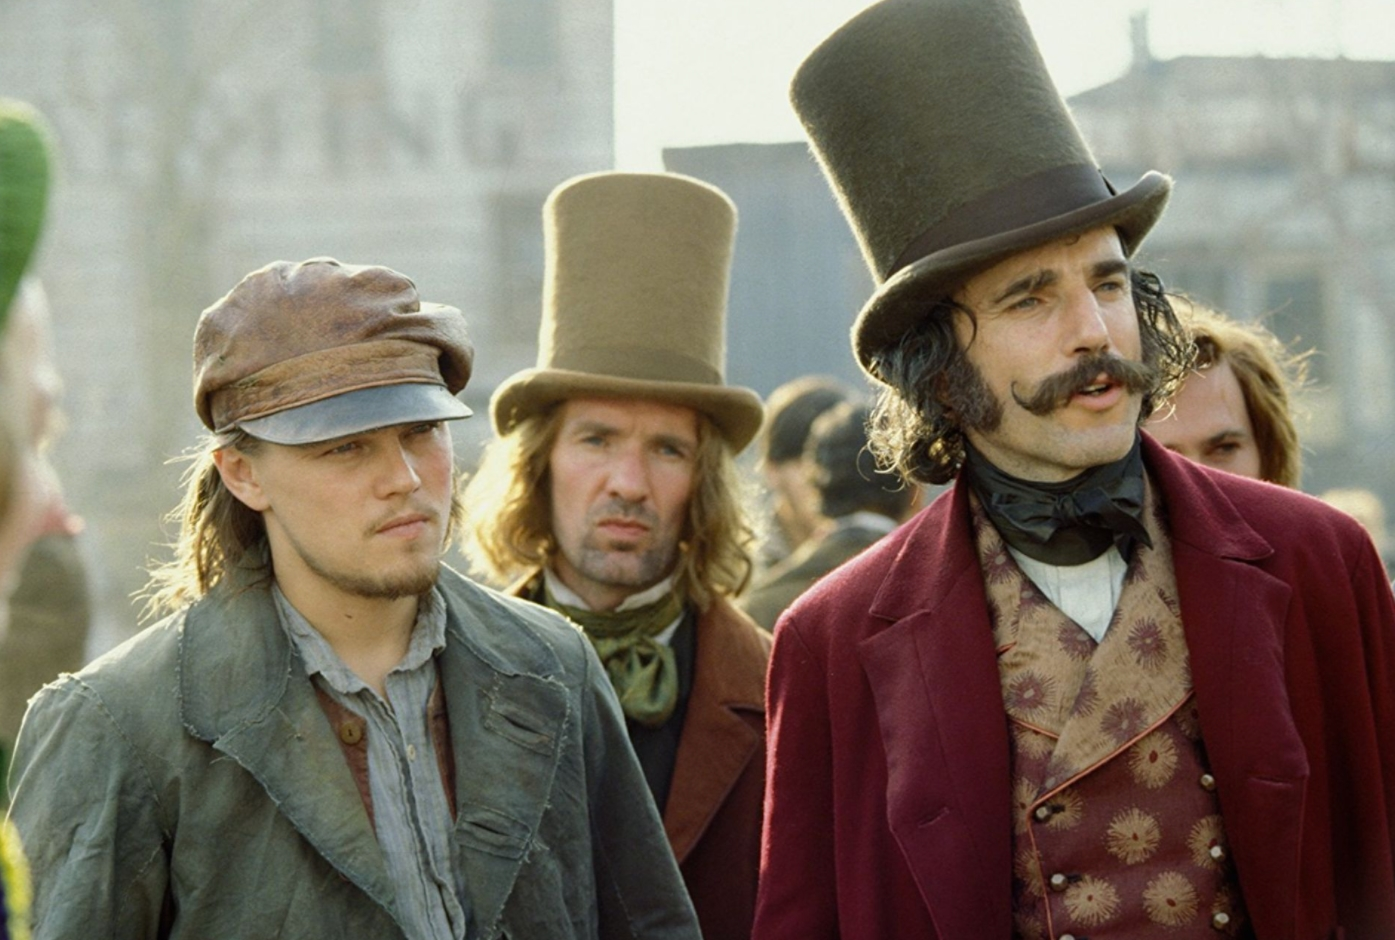 Set in 1862, this movie is known as _____.